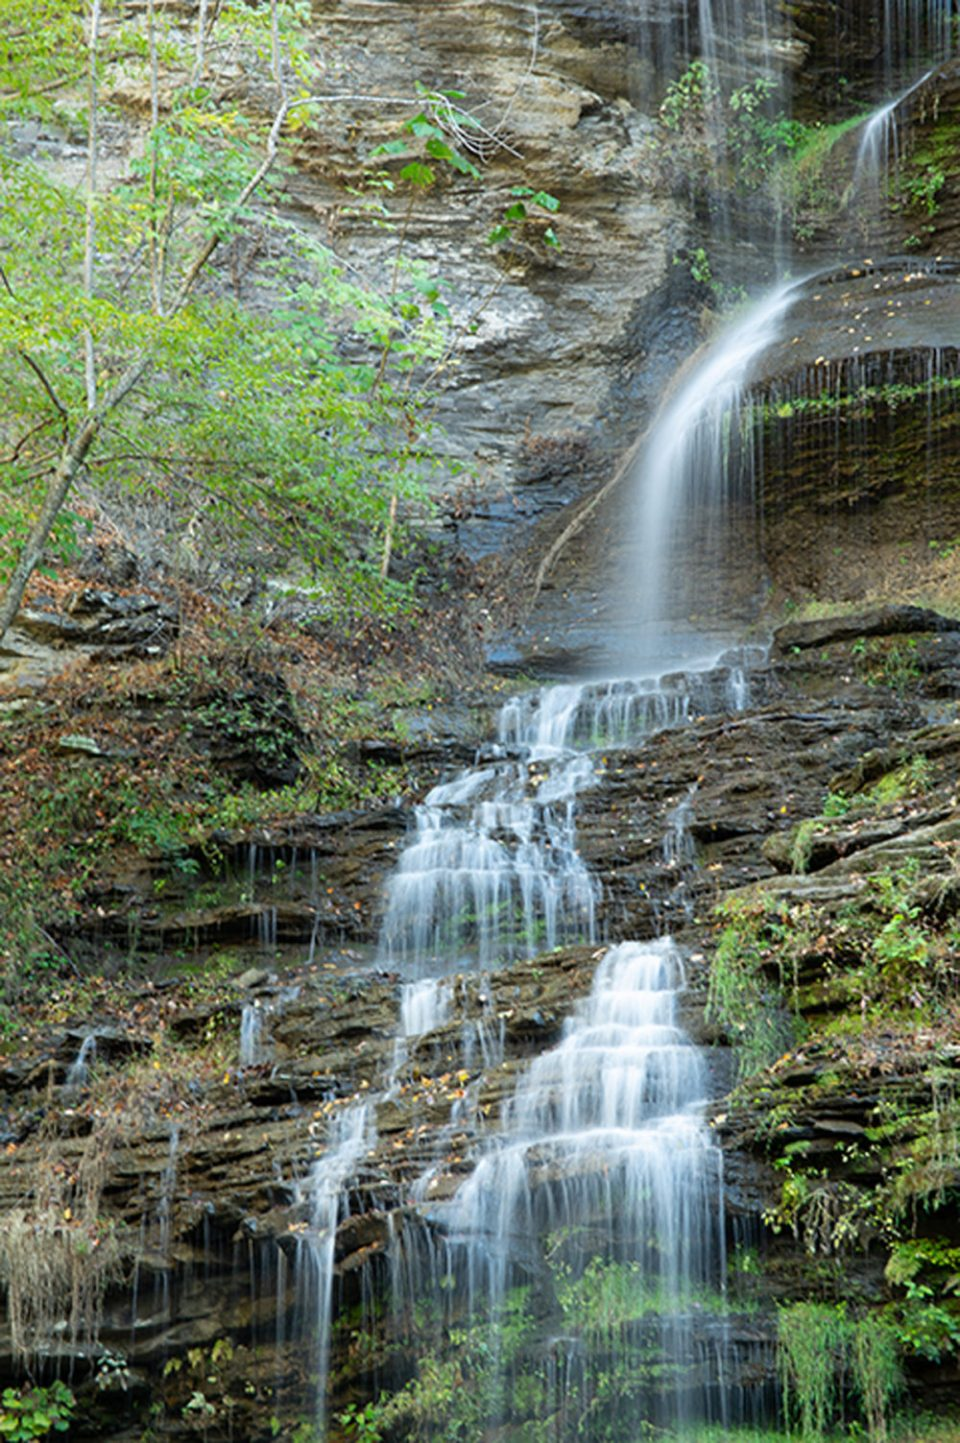 Lovely and lacey Cathedral Falls drops within its own wide rock alcove right along Route 60 near Amsted, WV.